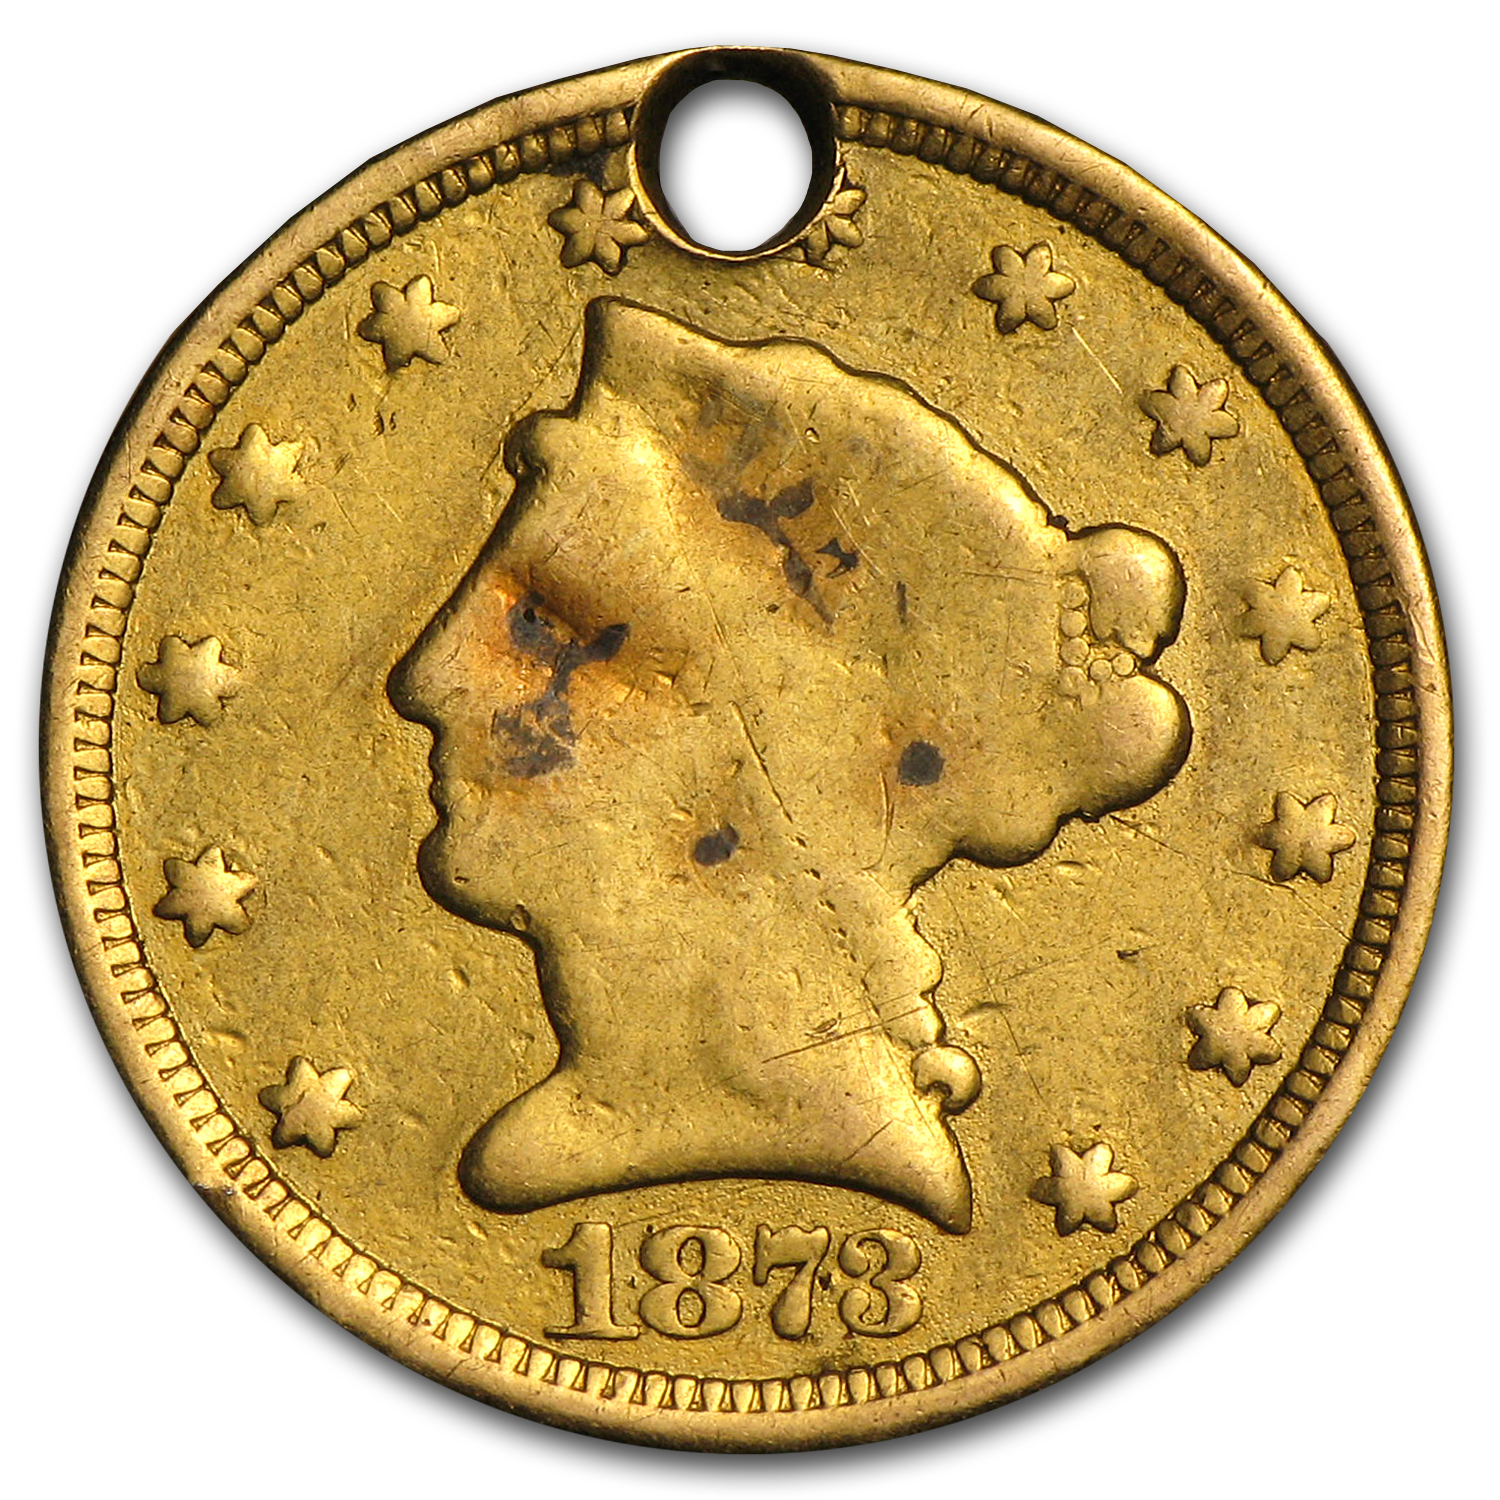 $2.50 Liberty Gold Quarter Eagle - 1873 Love Token - W B G